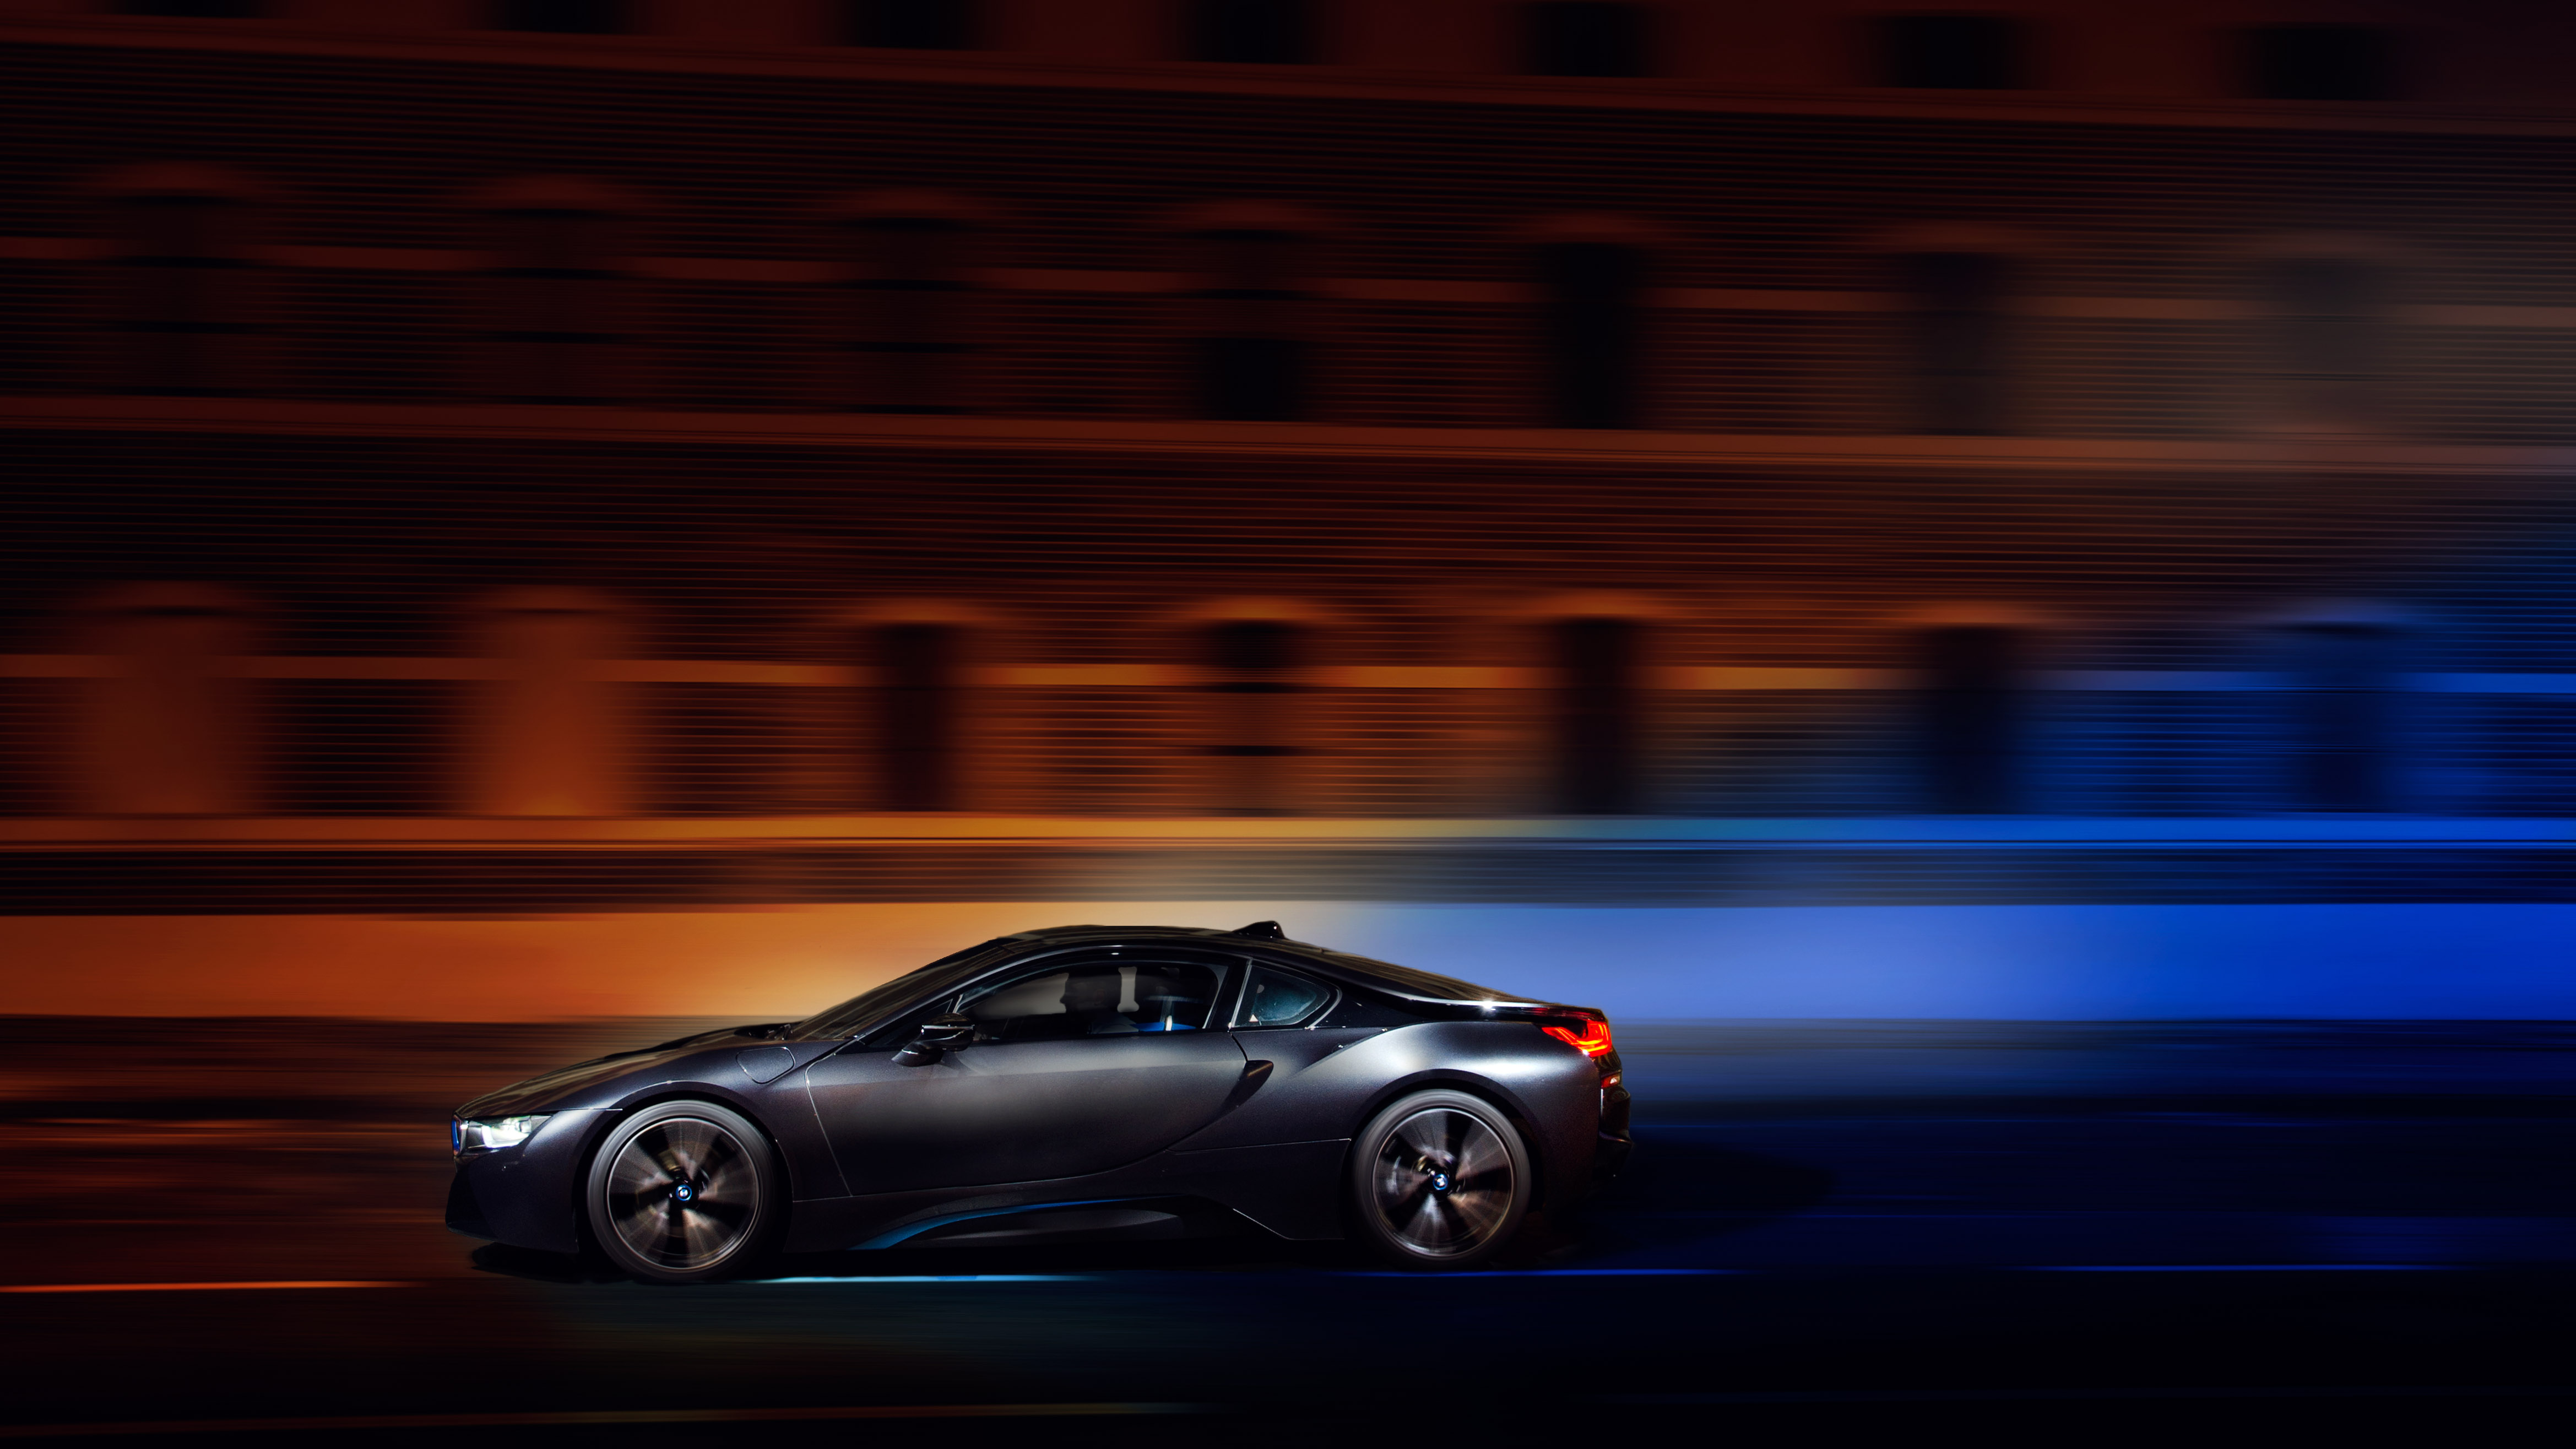 85887 download wallpaper Bmw, Night, Cars, Traffic, Movement, Speed, Bmw I8 screensavers and pictures for free